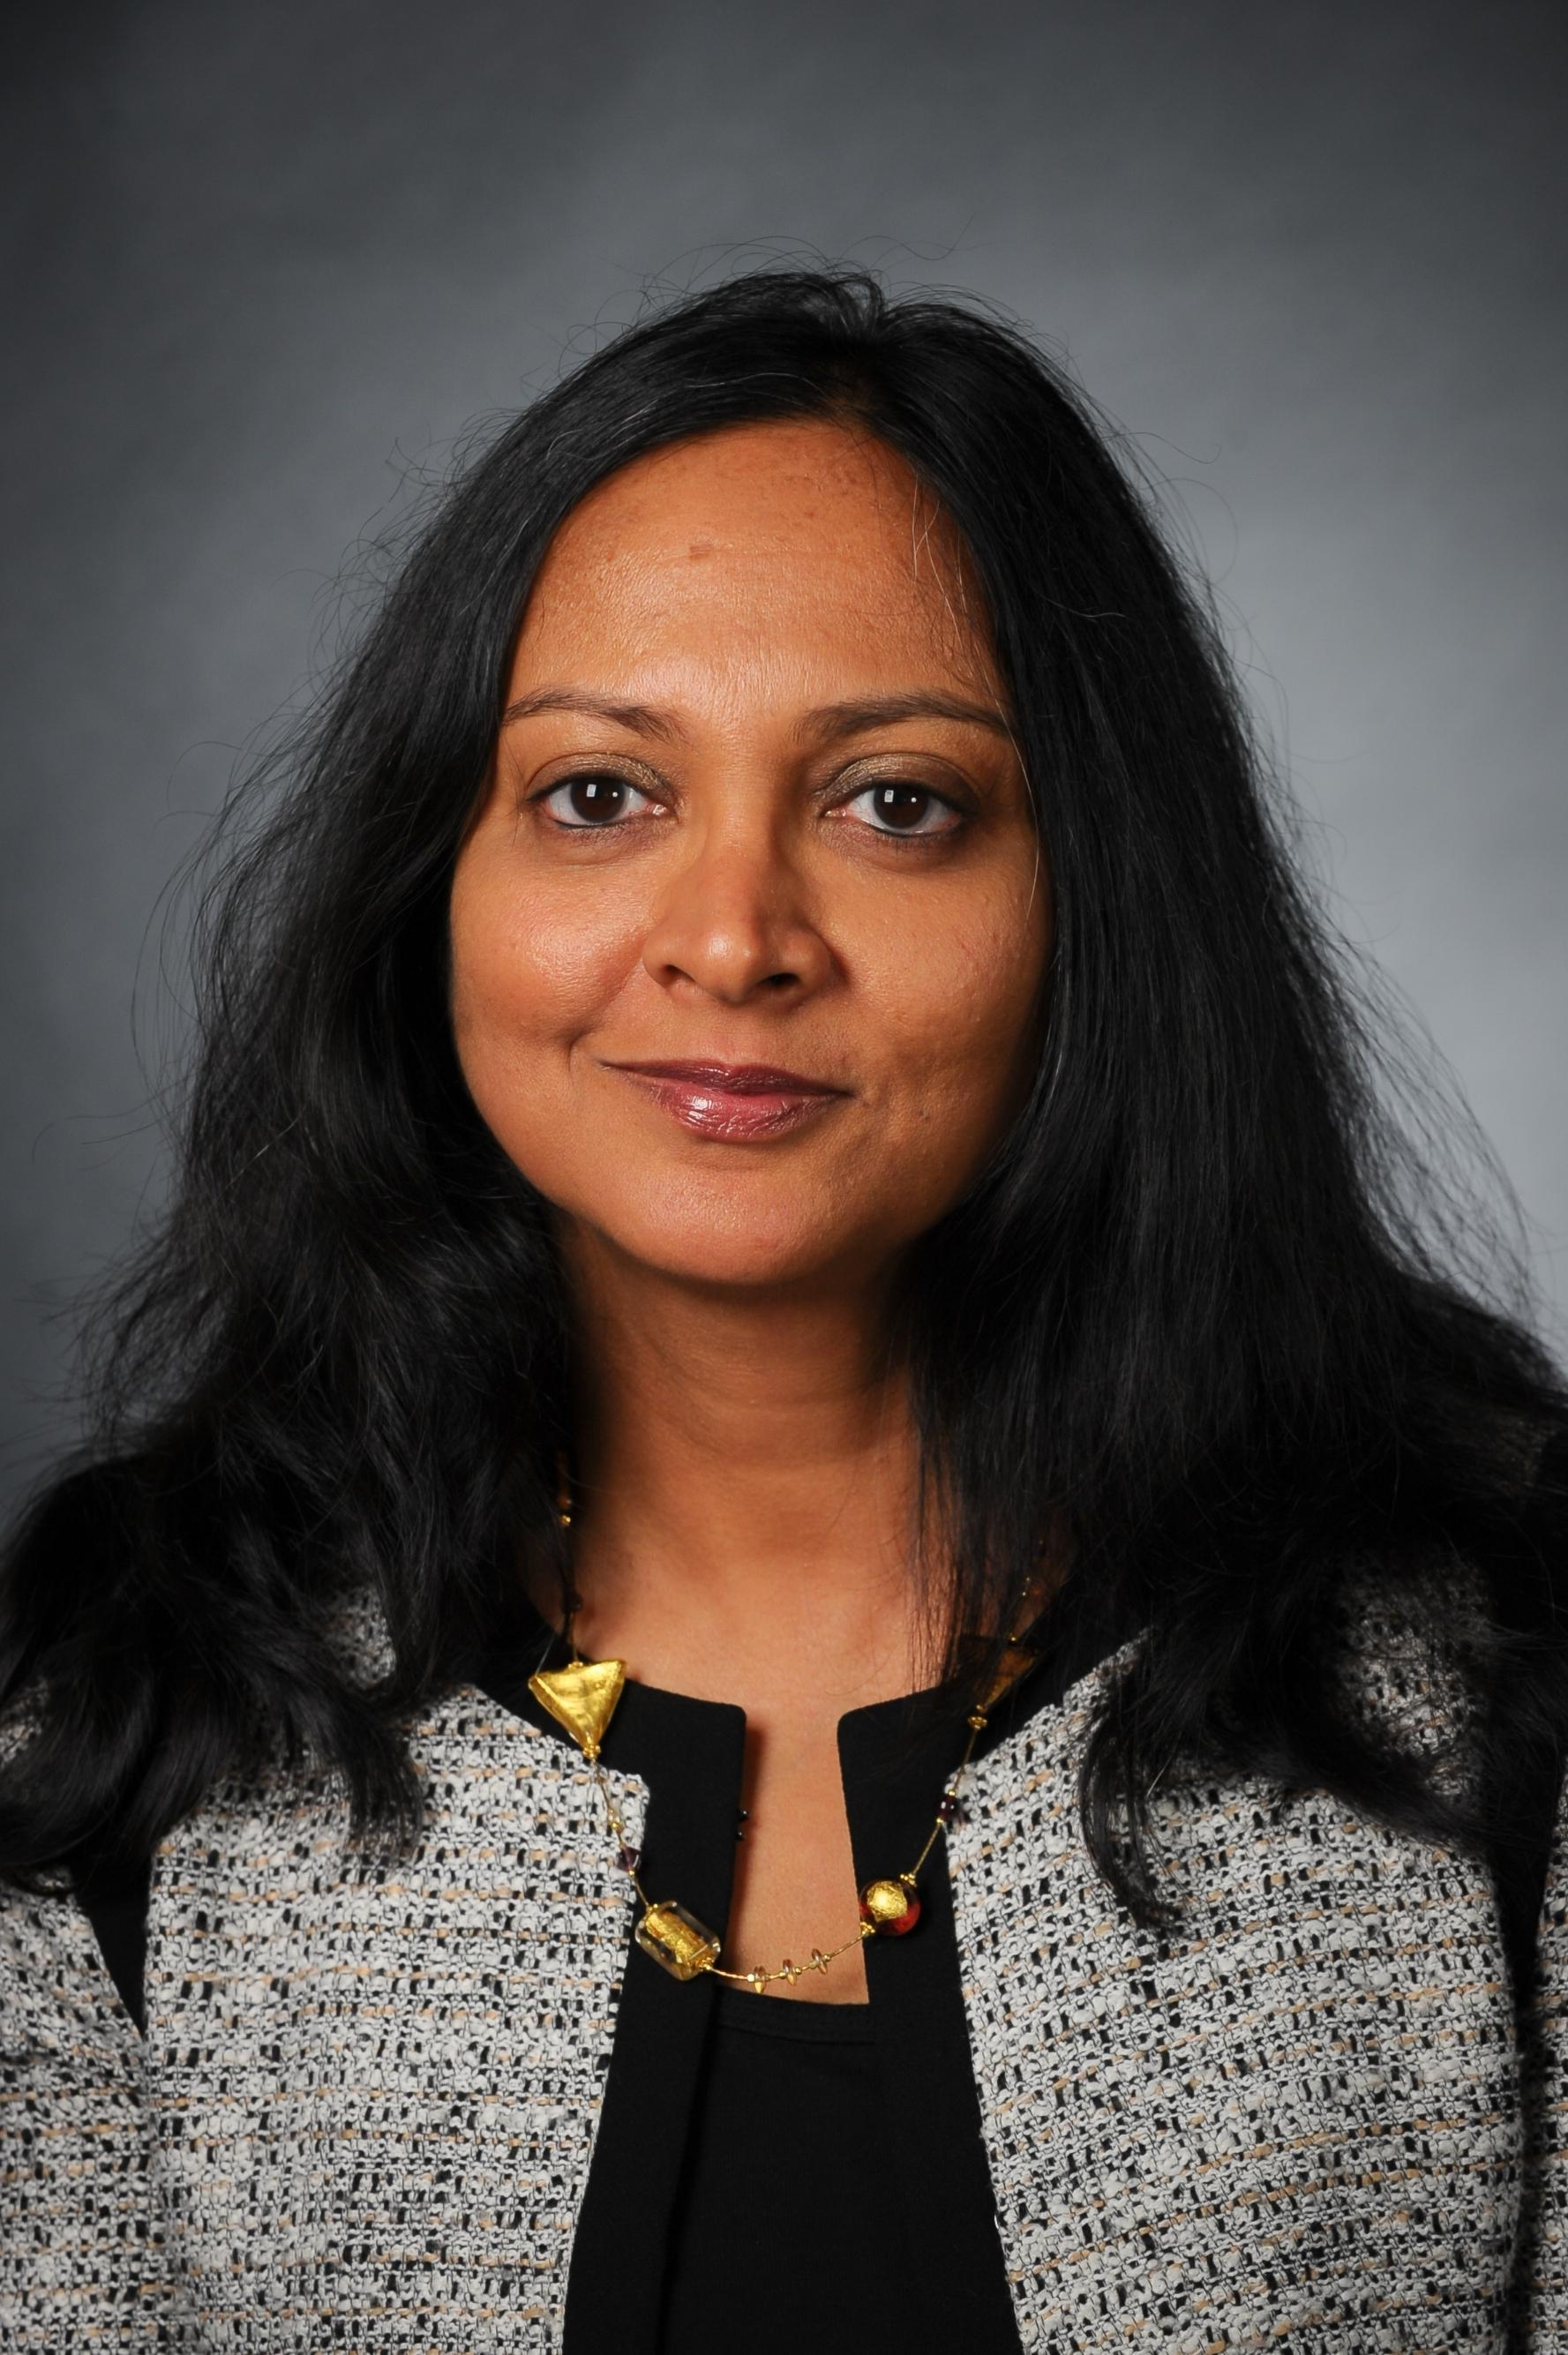 Profile photo for Ishita Khemka